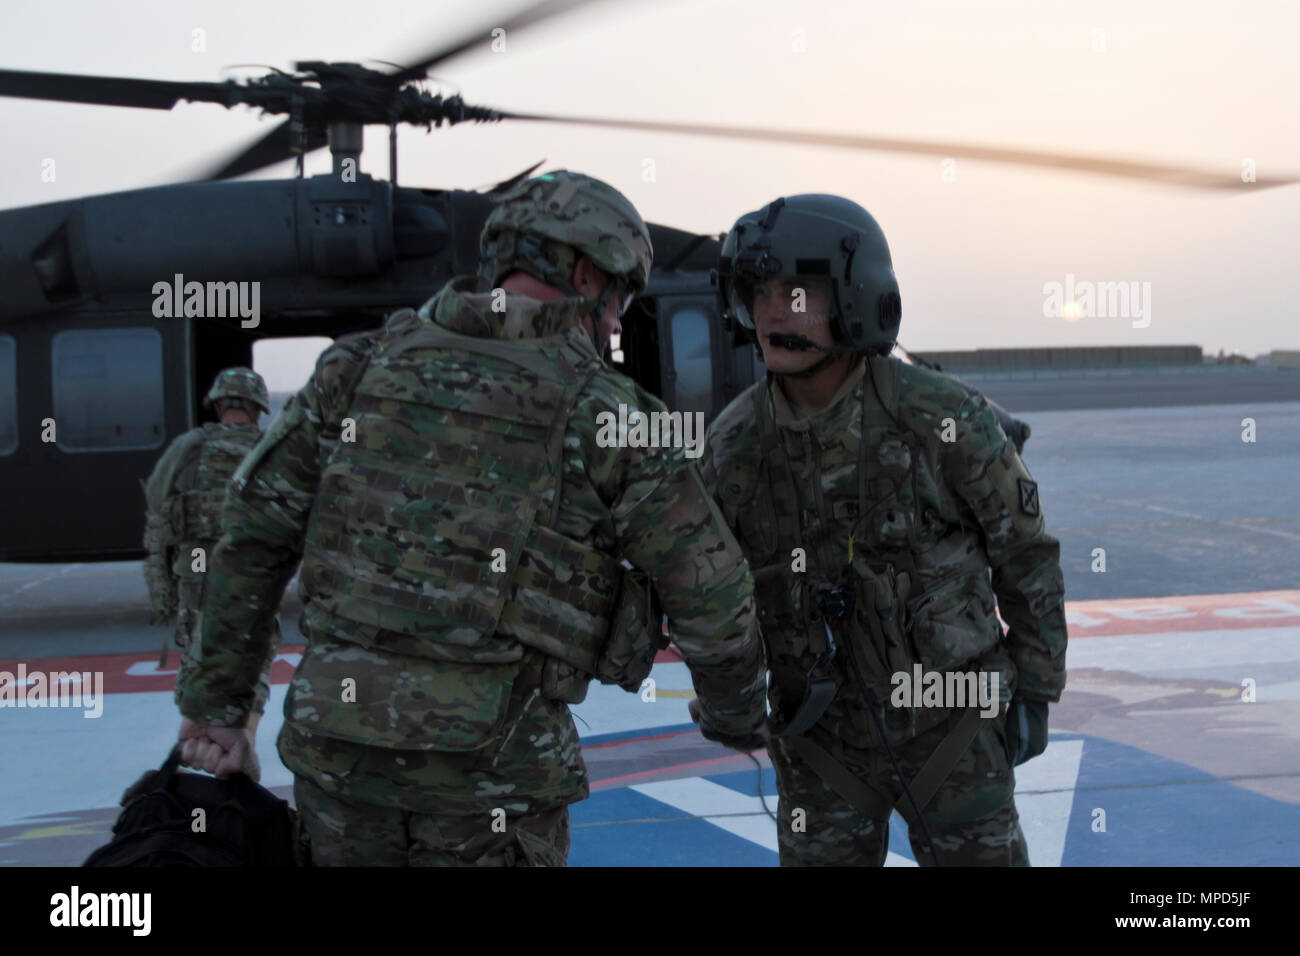 Brig. Gen. Robert D. Harter, deputy commanding general of the 1st Sustainment Command (Theater) / commanding general of the 316th Sustainment Command (Expeditionary), prepares to board a UH-60 Black Hawk at Camp Arifjan, Kuwait, on February 4, 2017. (U.S. Army photo by Staff Sgt. Dalton Smith) - Stock Image